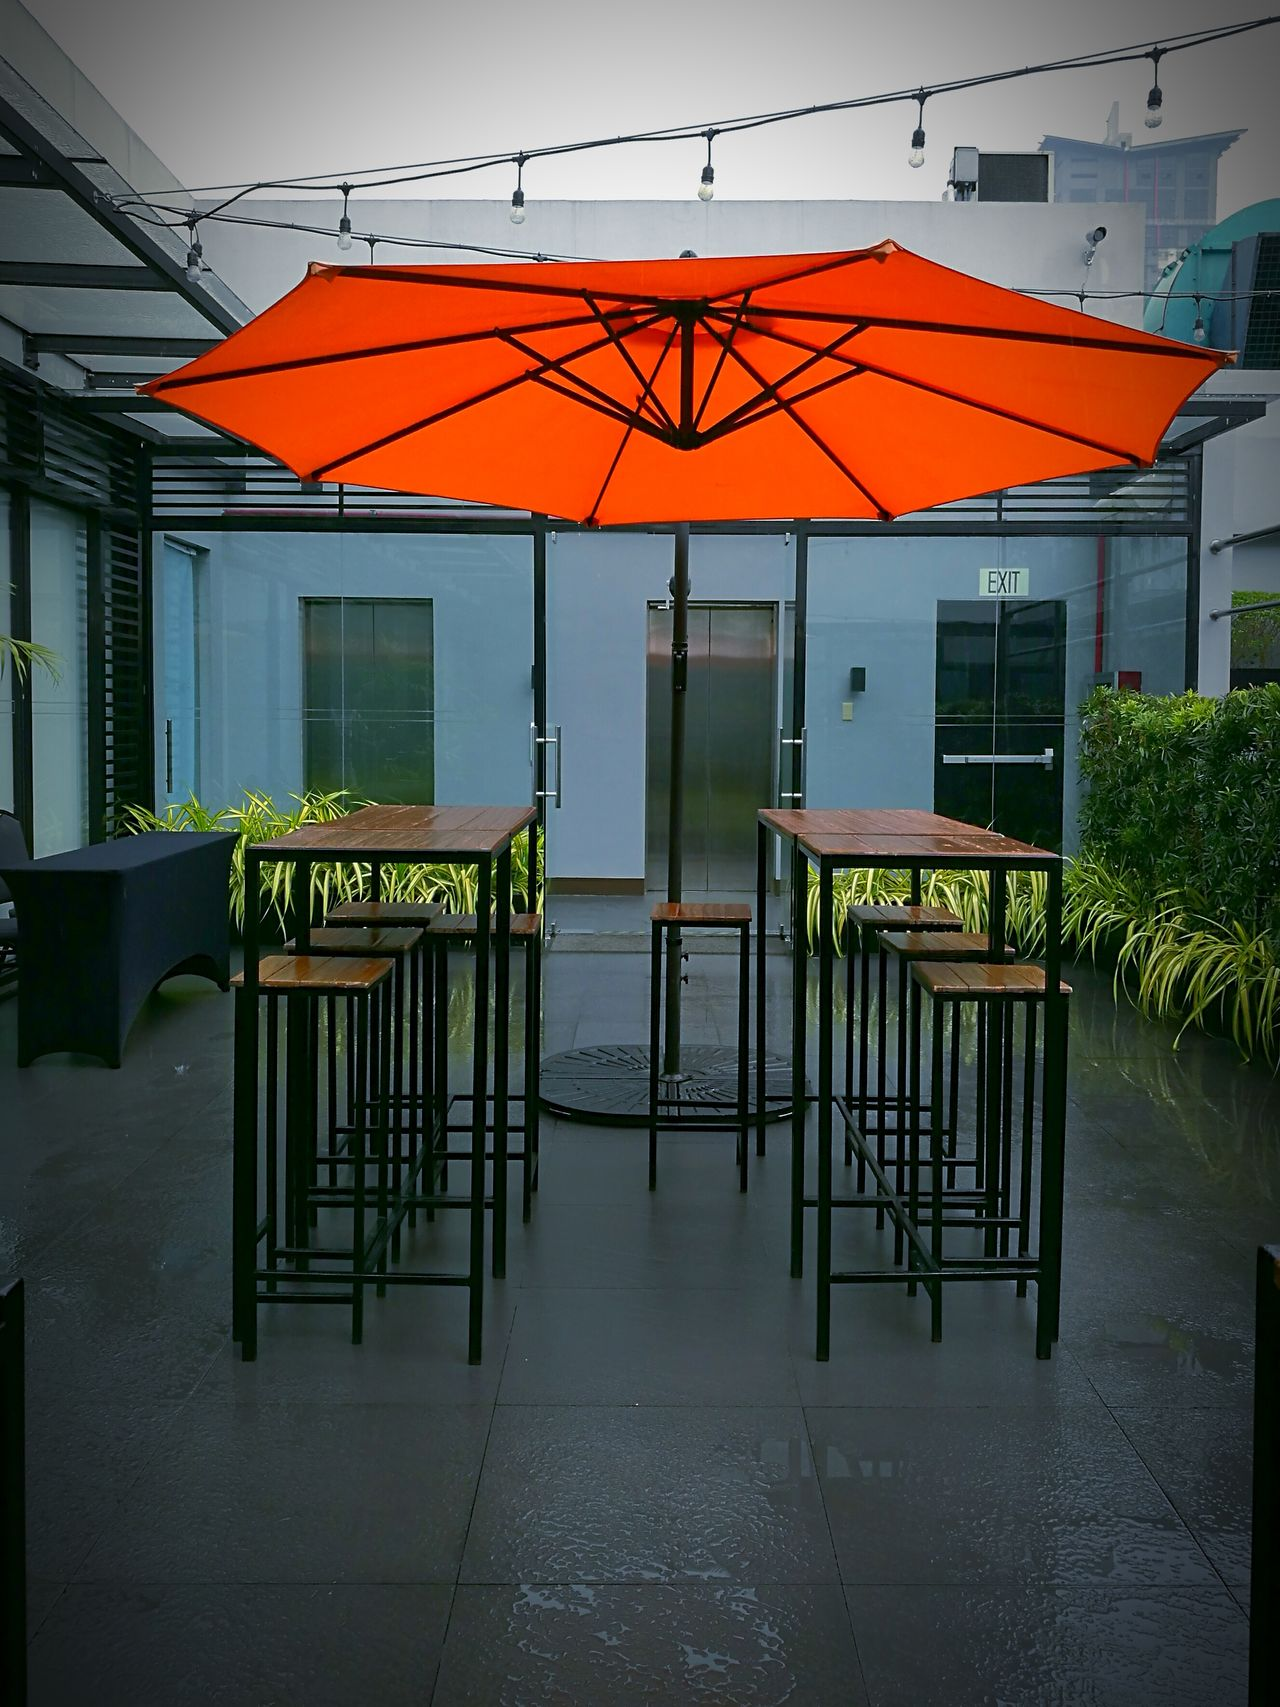 Rainy Weather Chair No People Outdoors Building Terrace P9 Huawei Orangeumbrella Umbrella